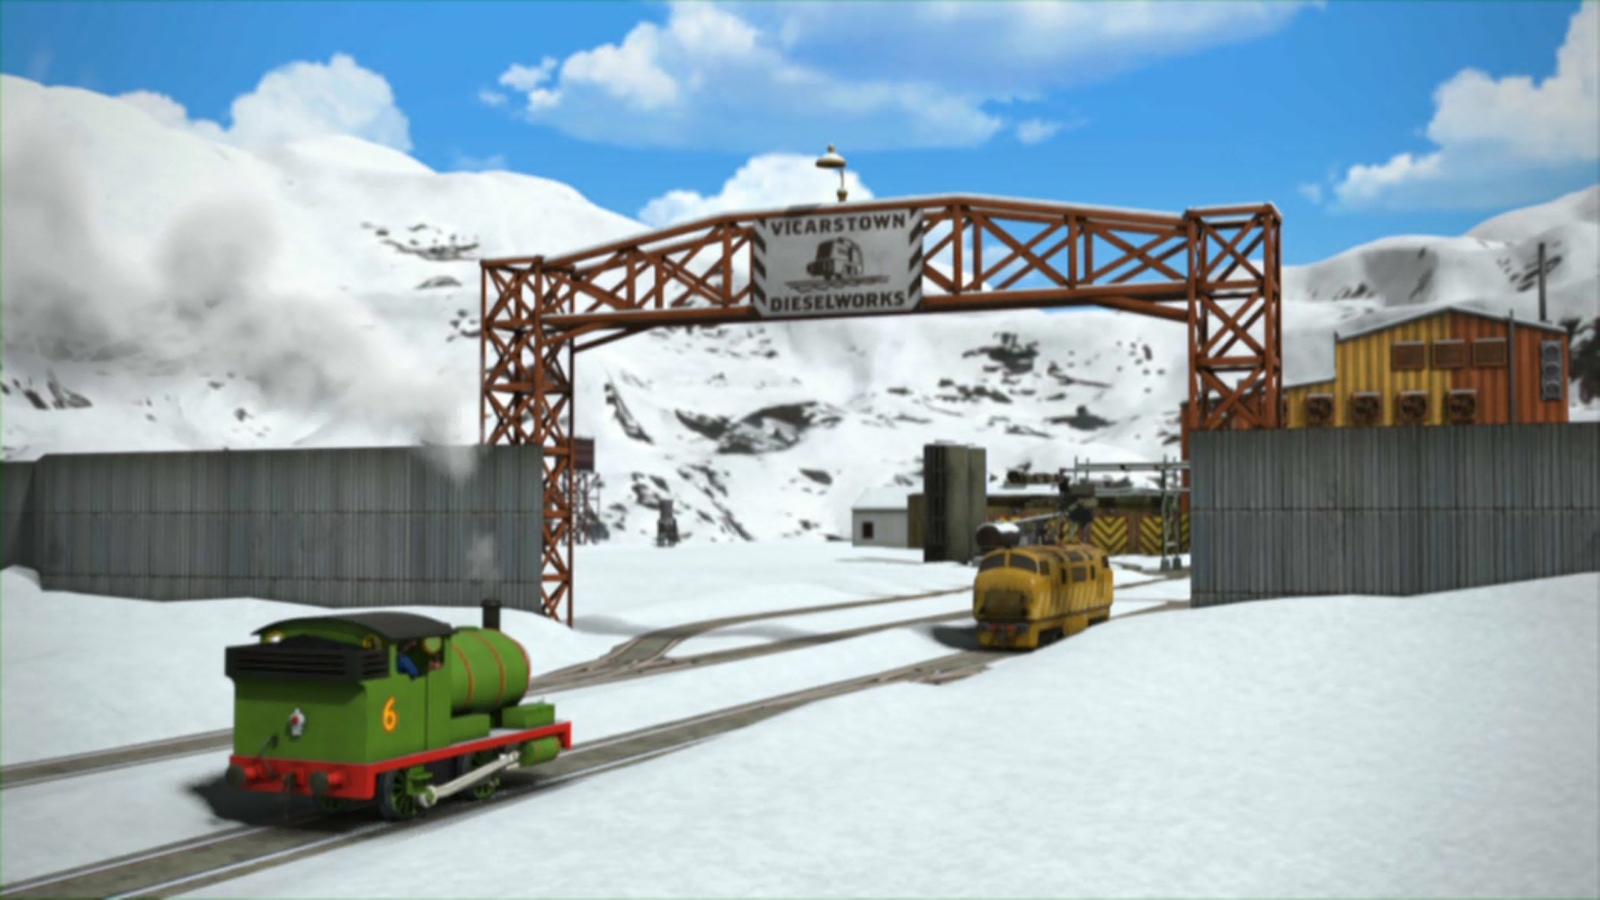 The missing christmas decorations uk hd - The Missing Christmas Decorations Thomas The Tank Engine Wikia Fandom Powered By Wikia